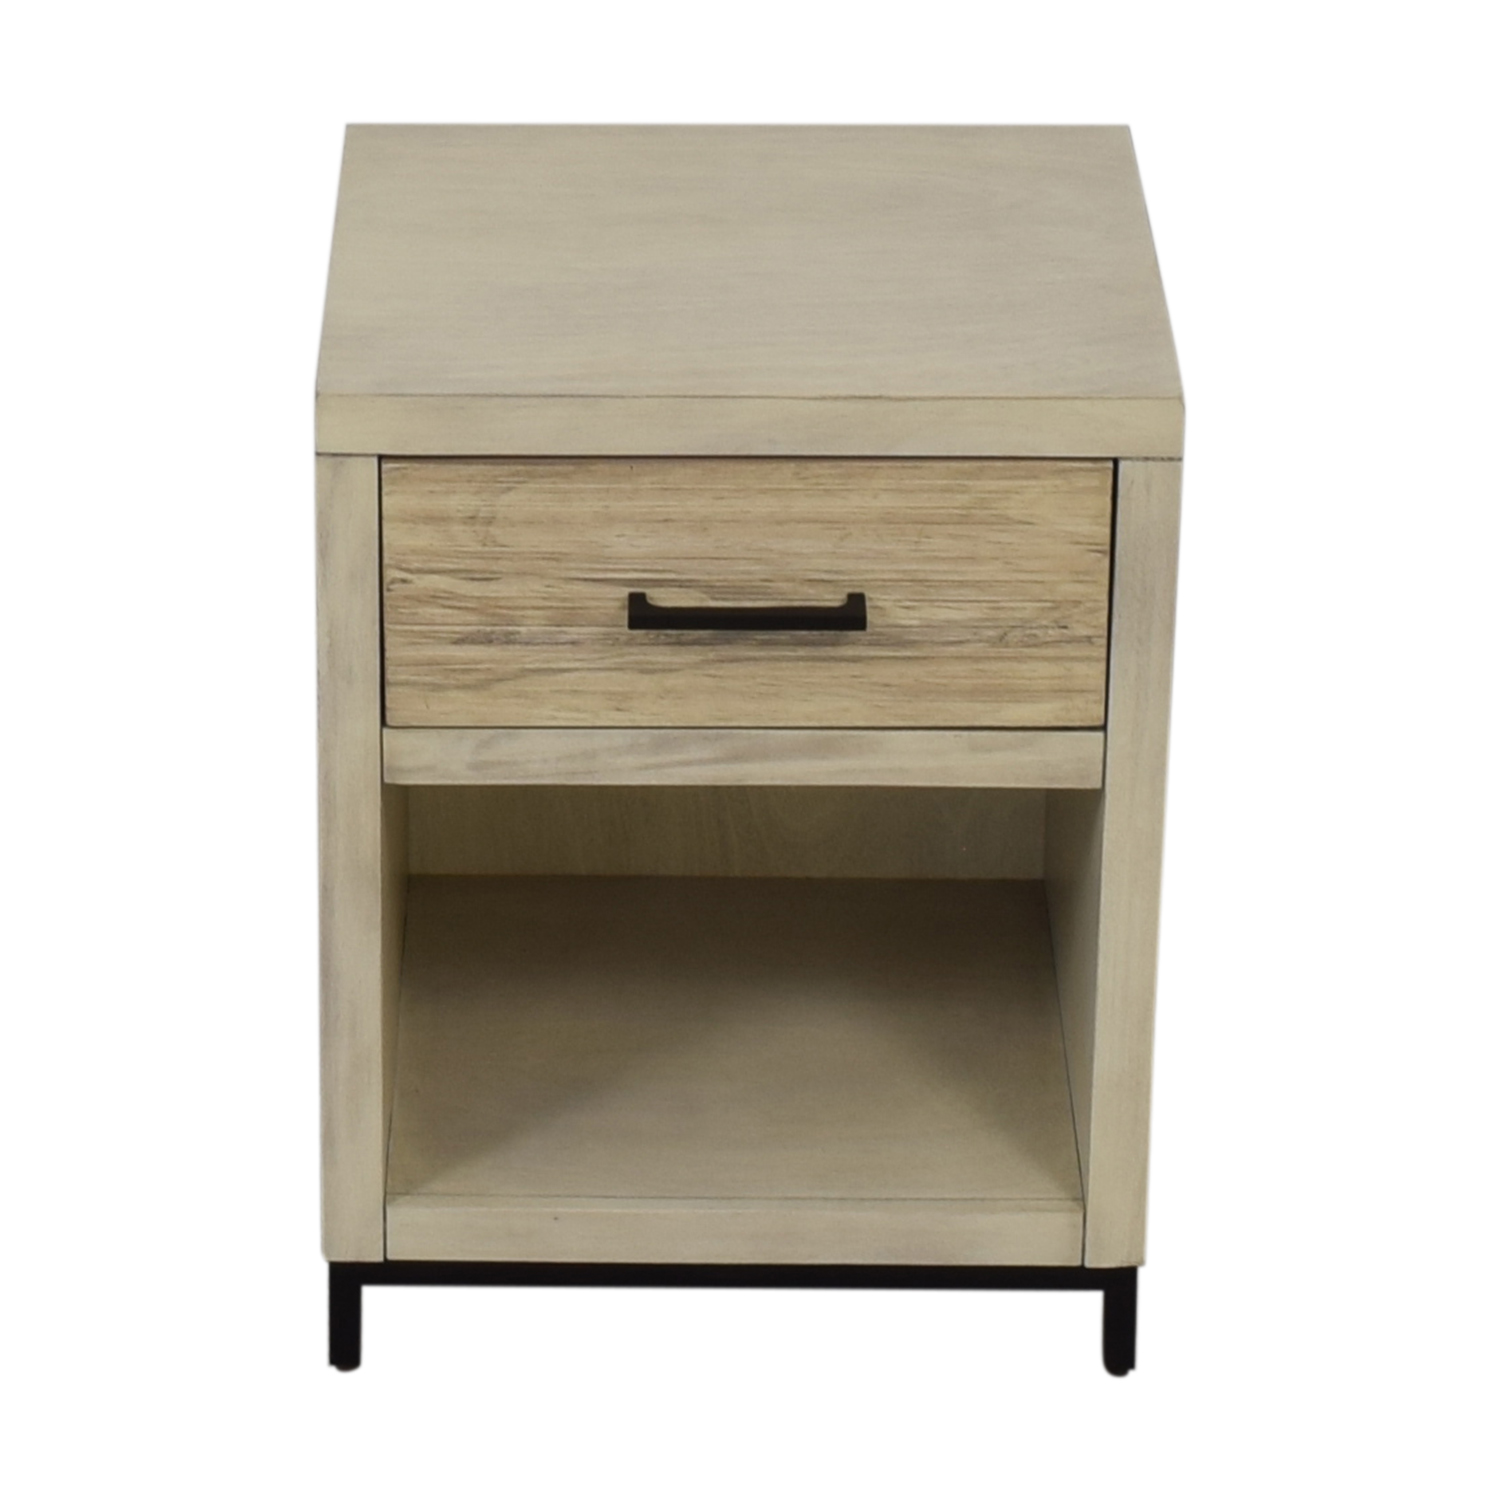 huge selection of cc938 08d2c 76% OFF - Wayfair Wayfair Dayana One-Drawer End Table / Tables